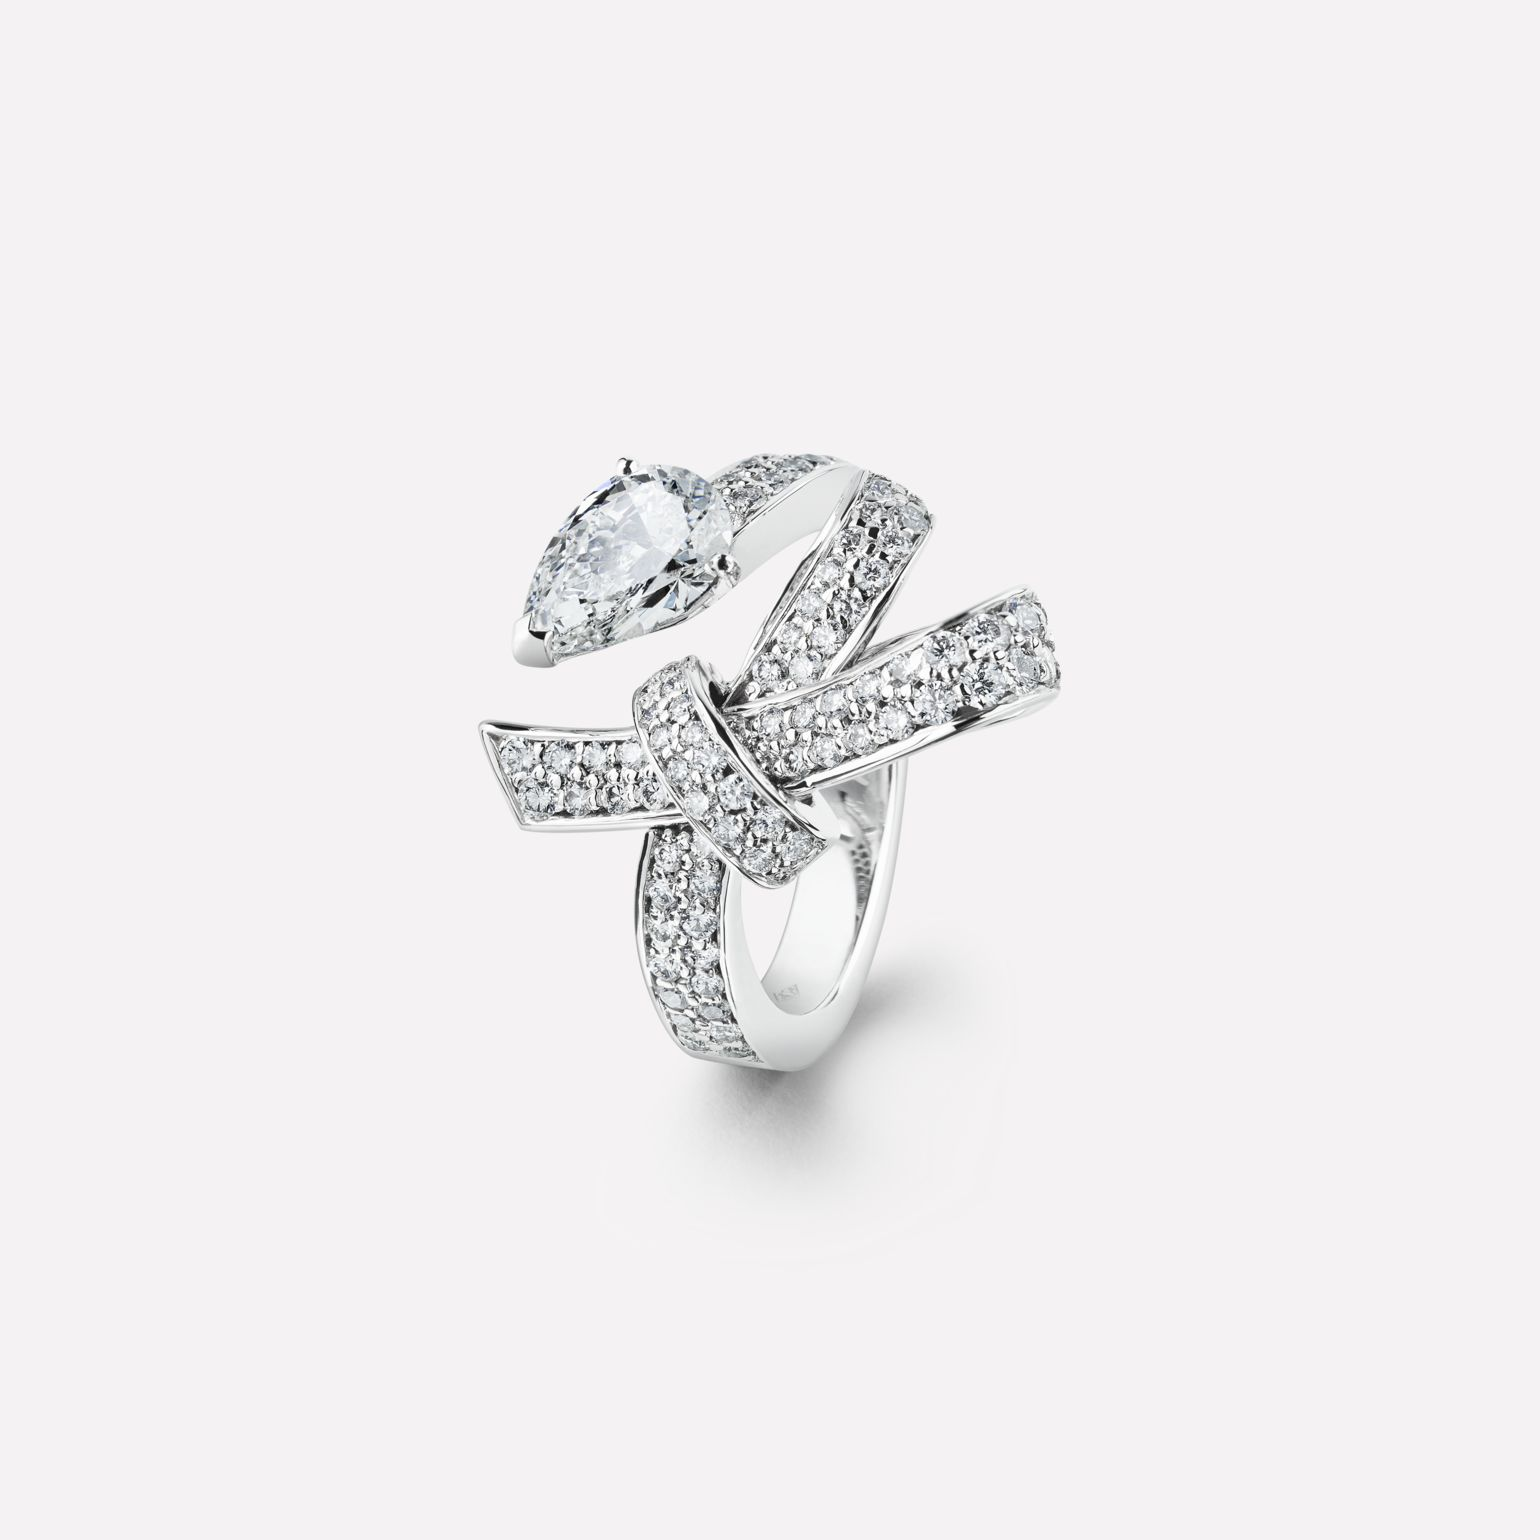 Ruban Ring Ruban ring in 18K white gold, diamonds and central diamond